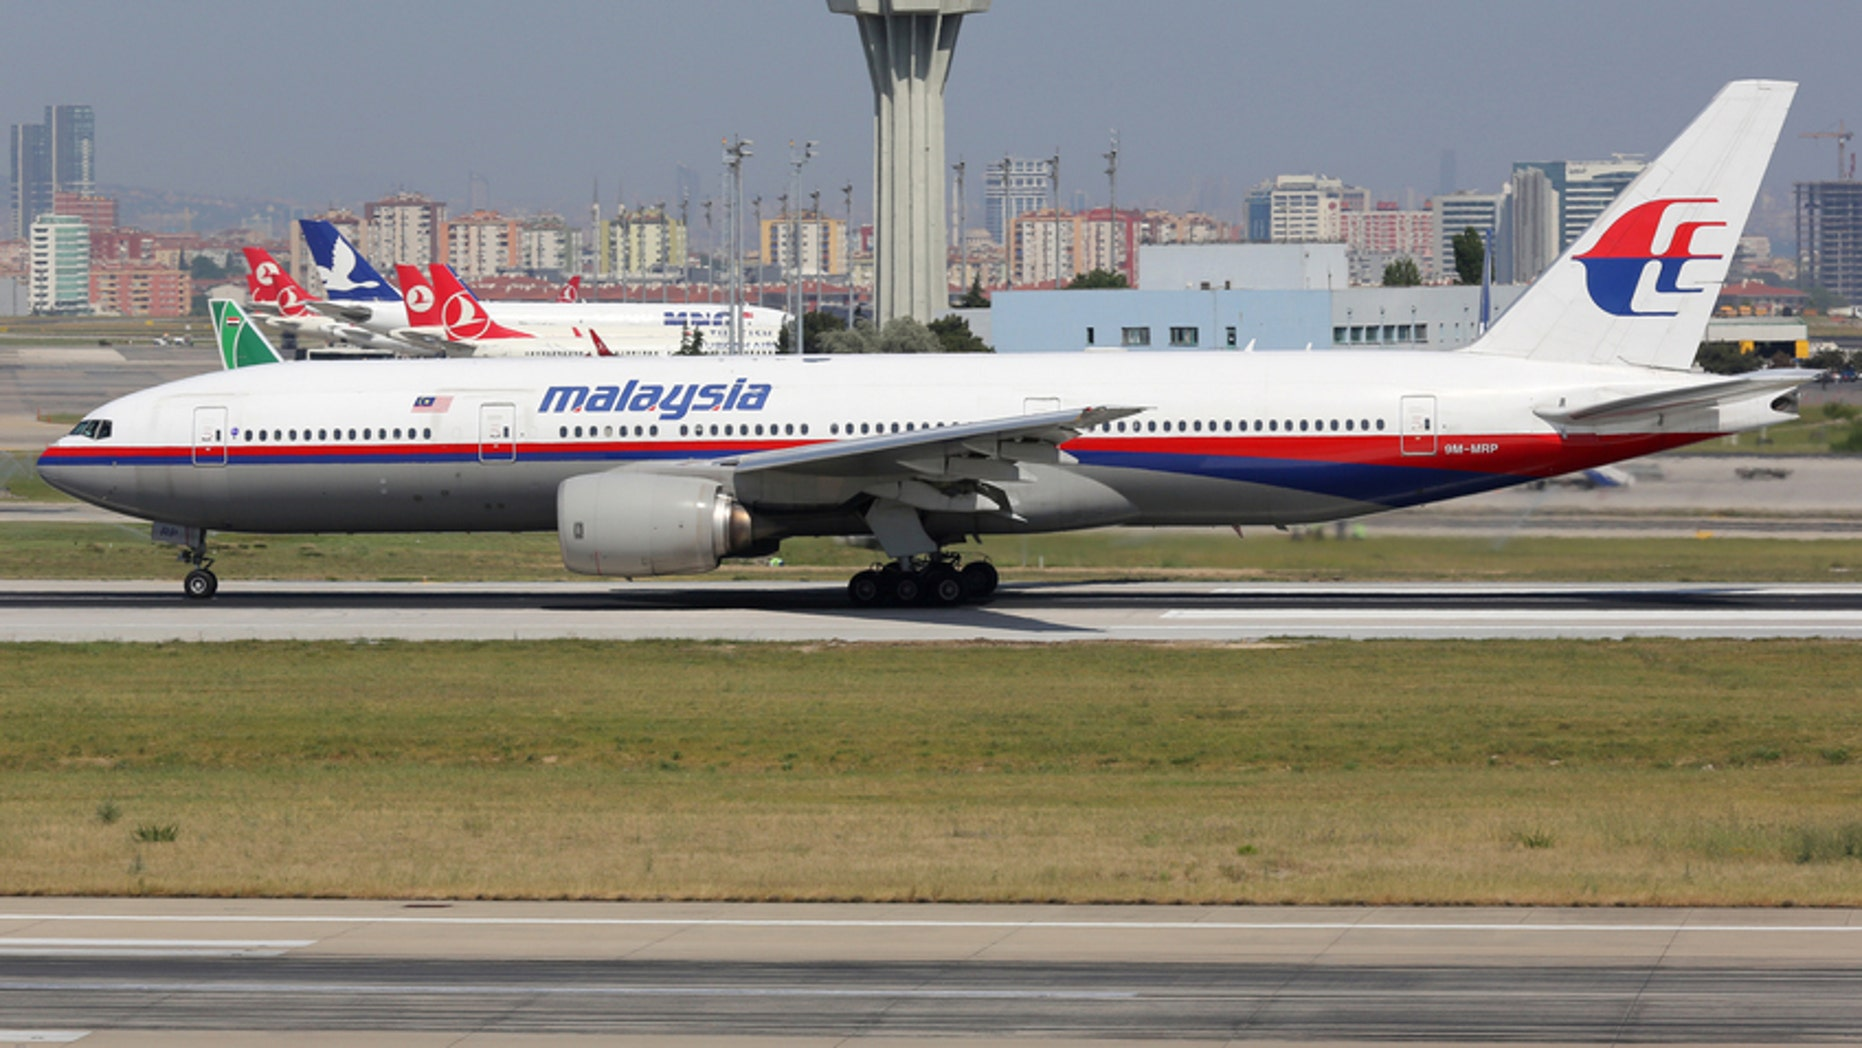 The disappearance of Malaysia Airlines Flight 370 one year ago, and the downing Flight 17 spurred renewed interest in real time flight tracking technology.